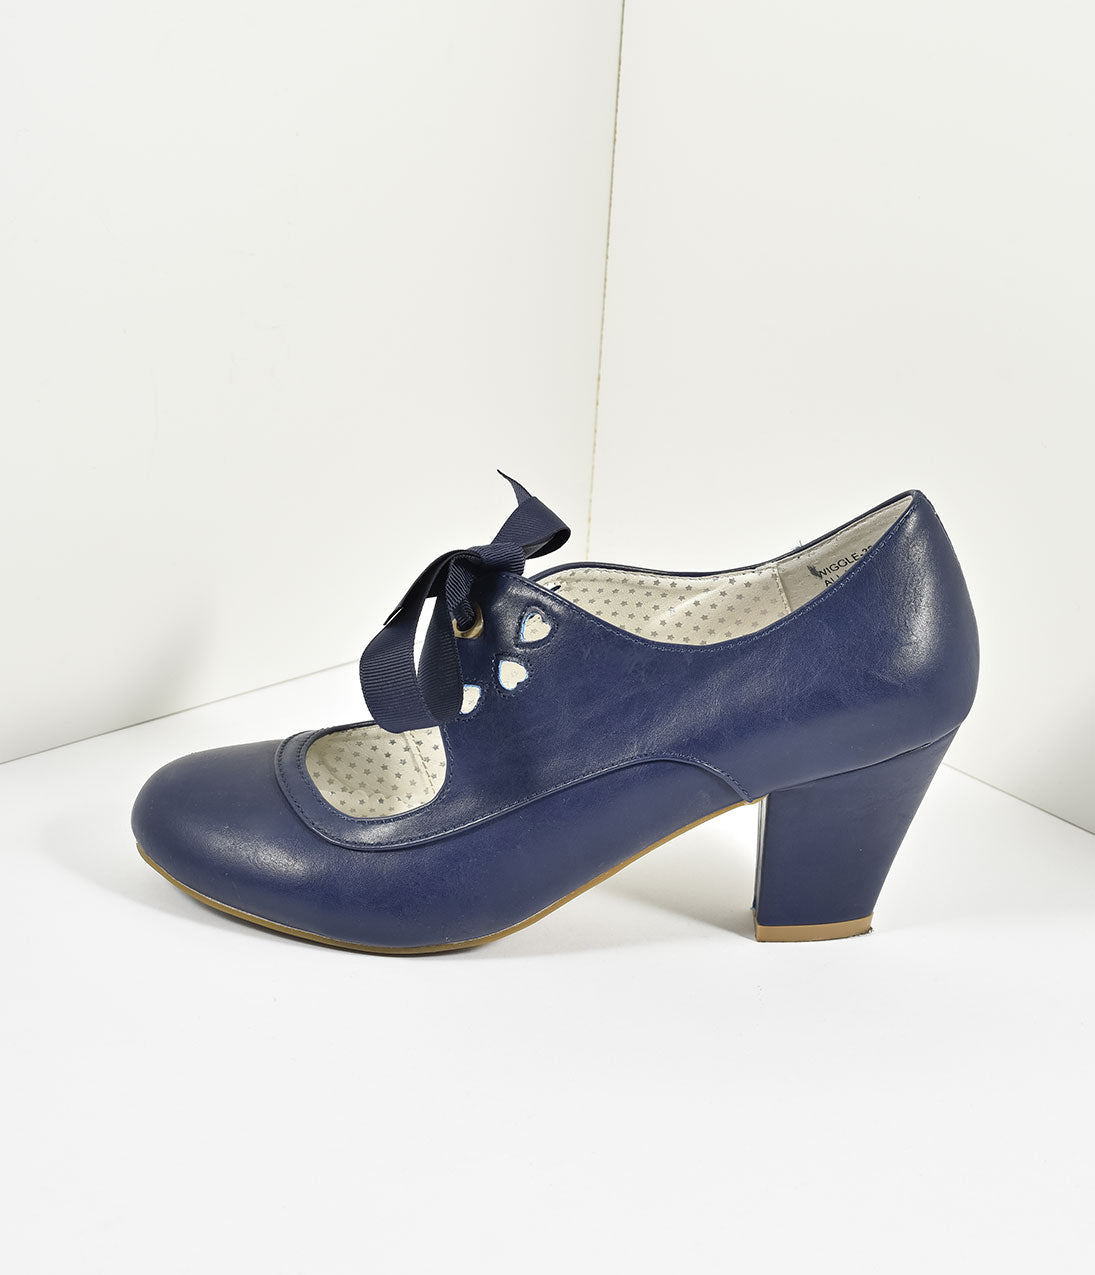 Pin Up Shoes- Heels, Pumps & Flats Vintage Style Navy Blue Leatherette Mary Jane Bow Wiggle Heels $58.00 AT vintagedancer.com